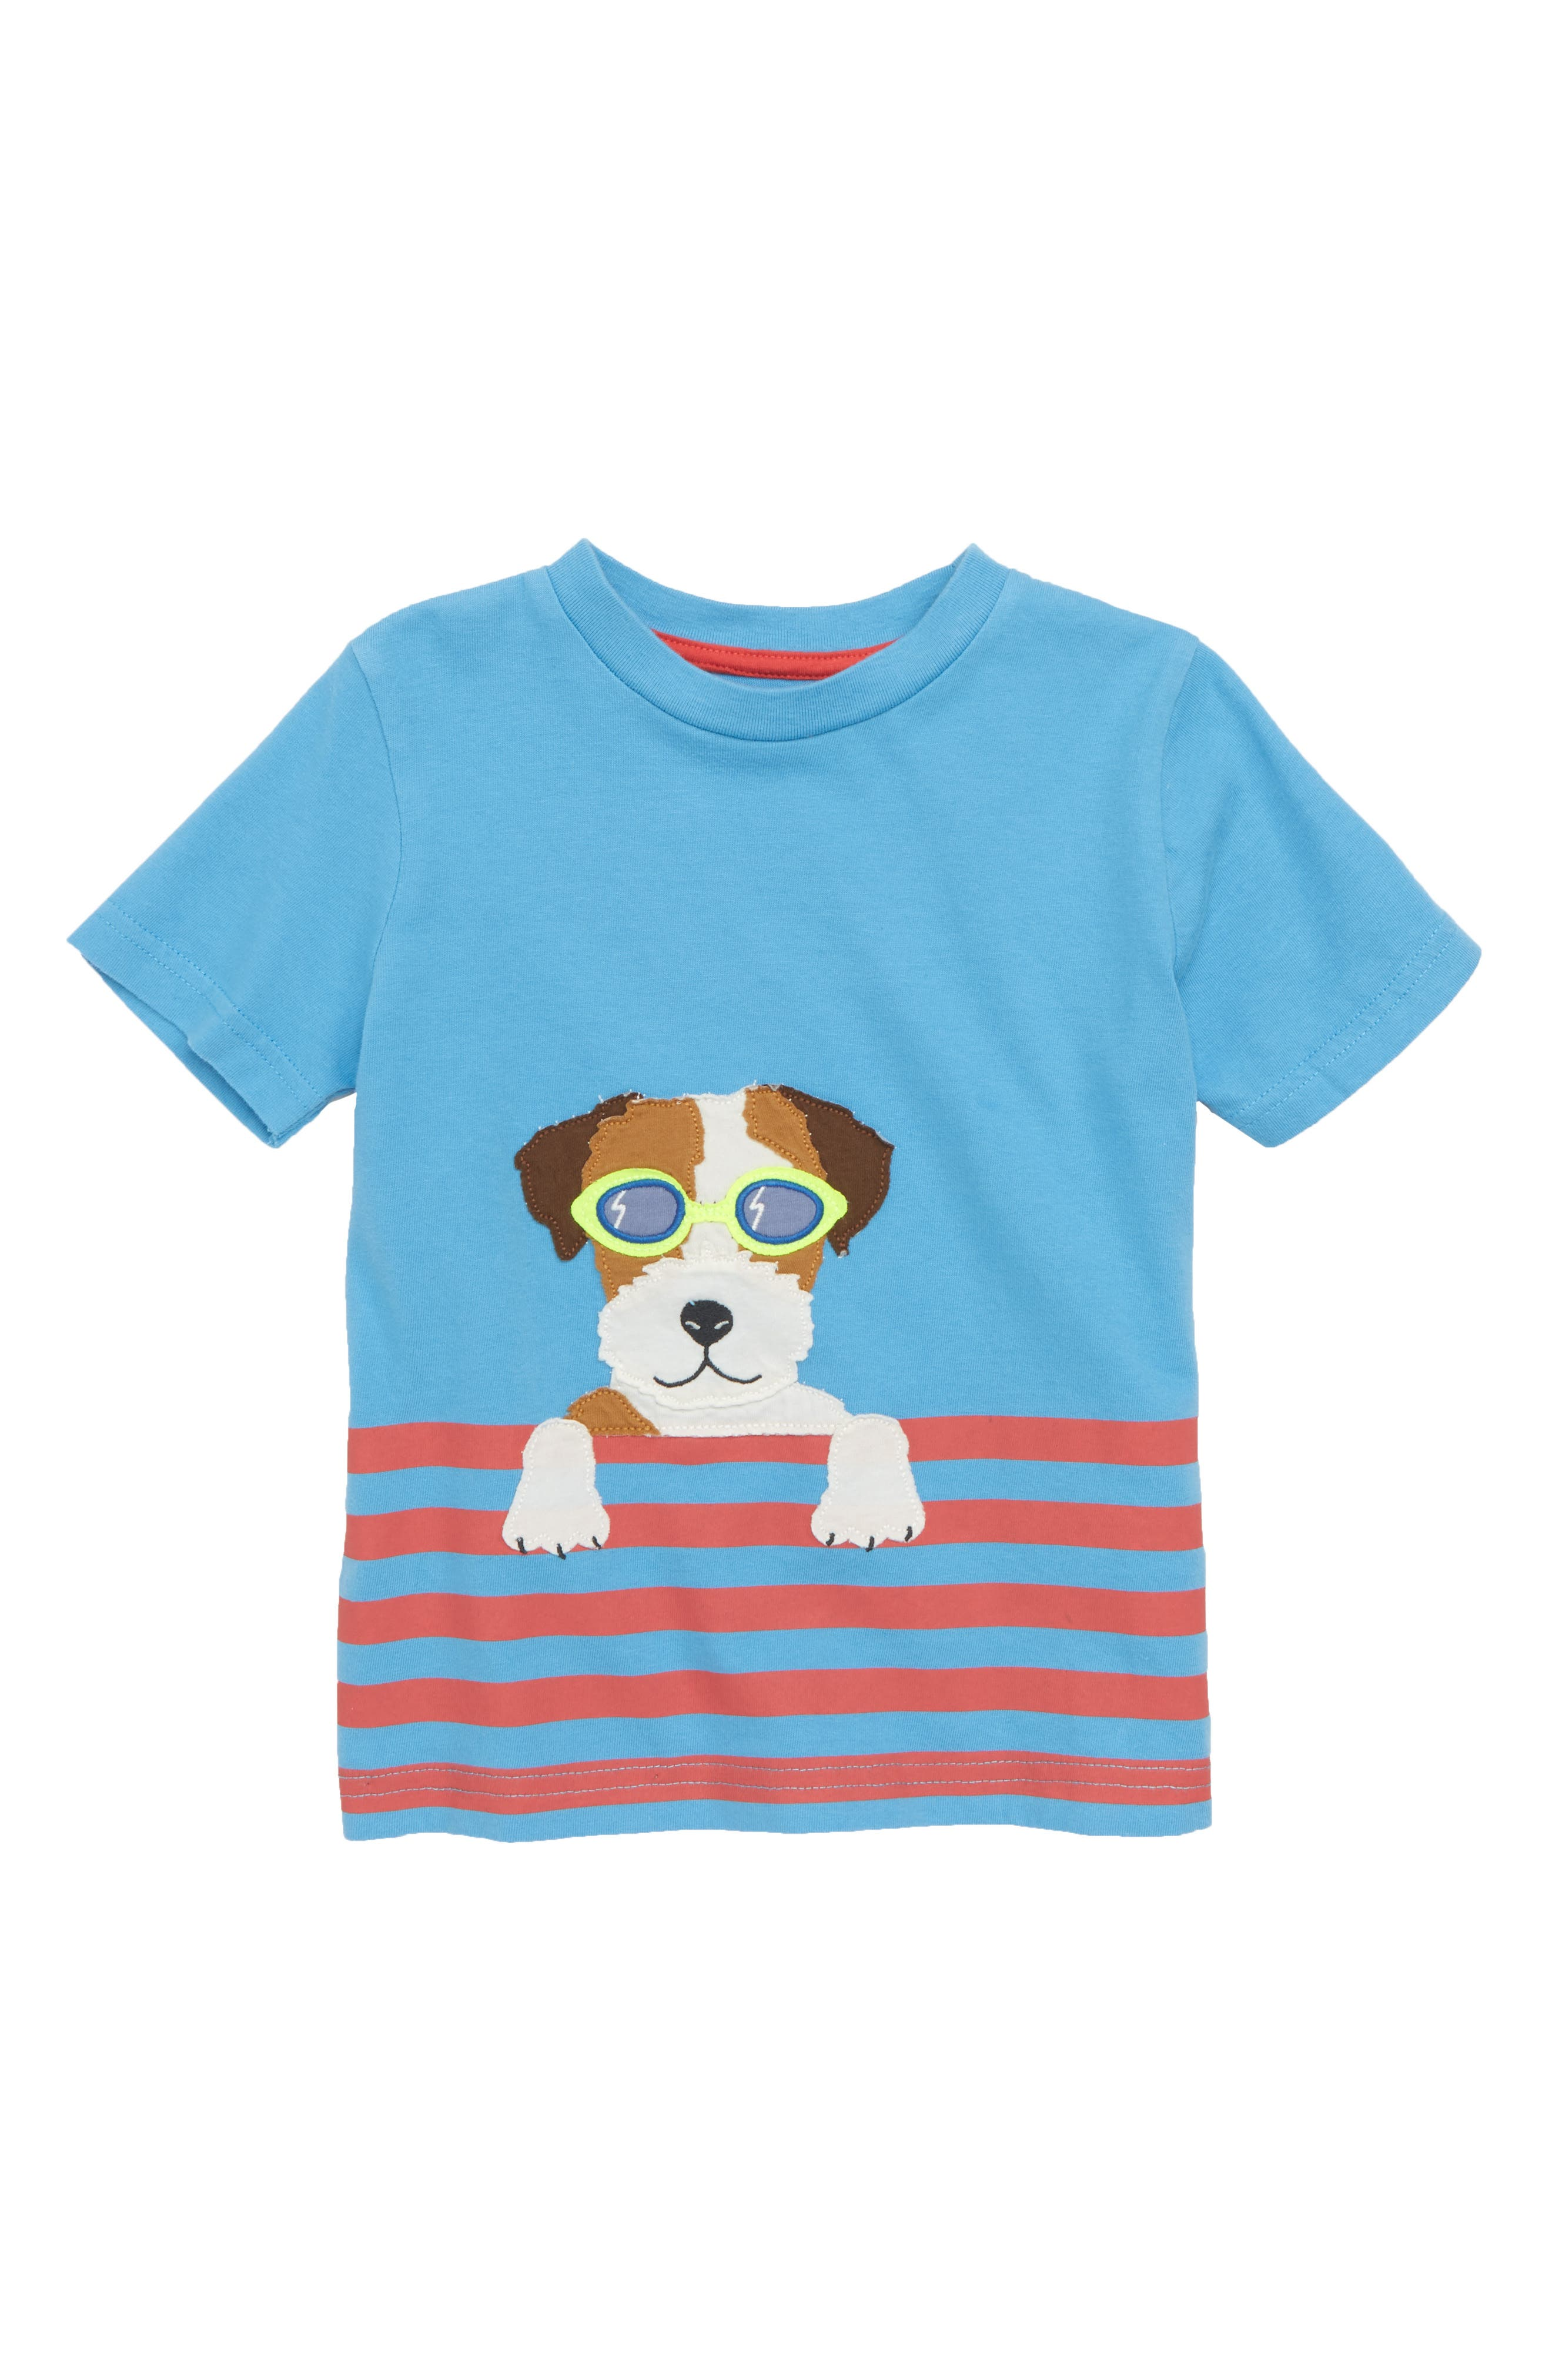 Paddling Pal Appliqué T-Shirt,                         Main,                         color, Surfboard Blue Swimming Sprout